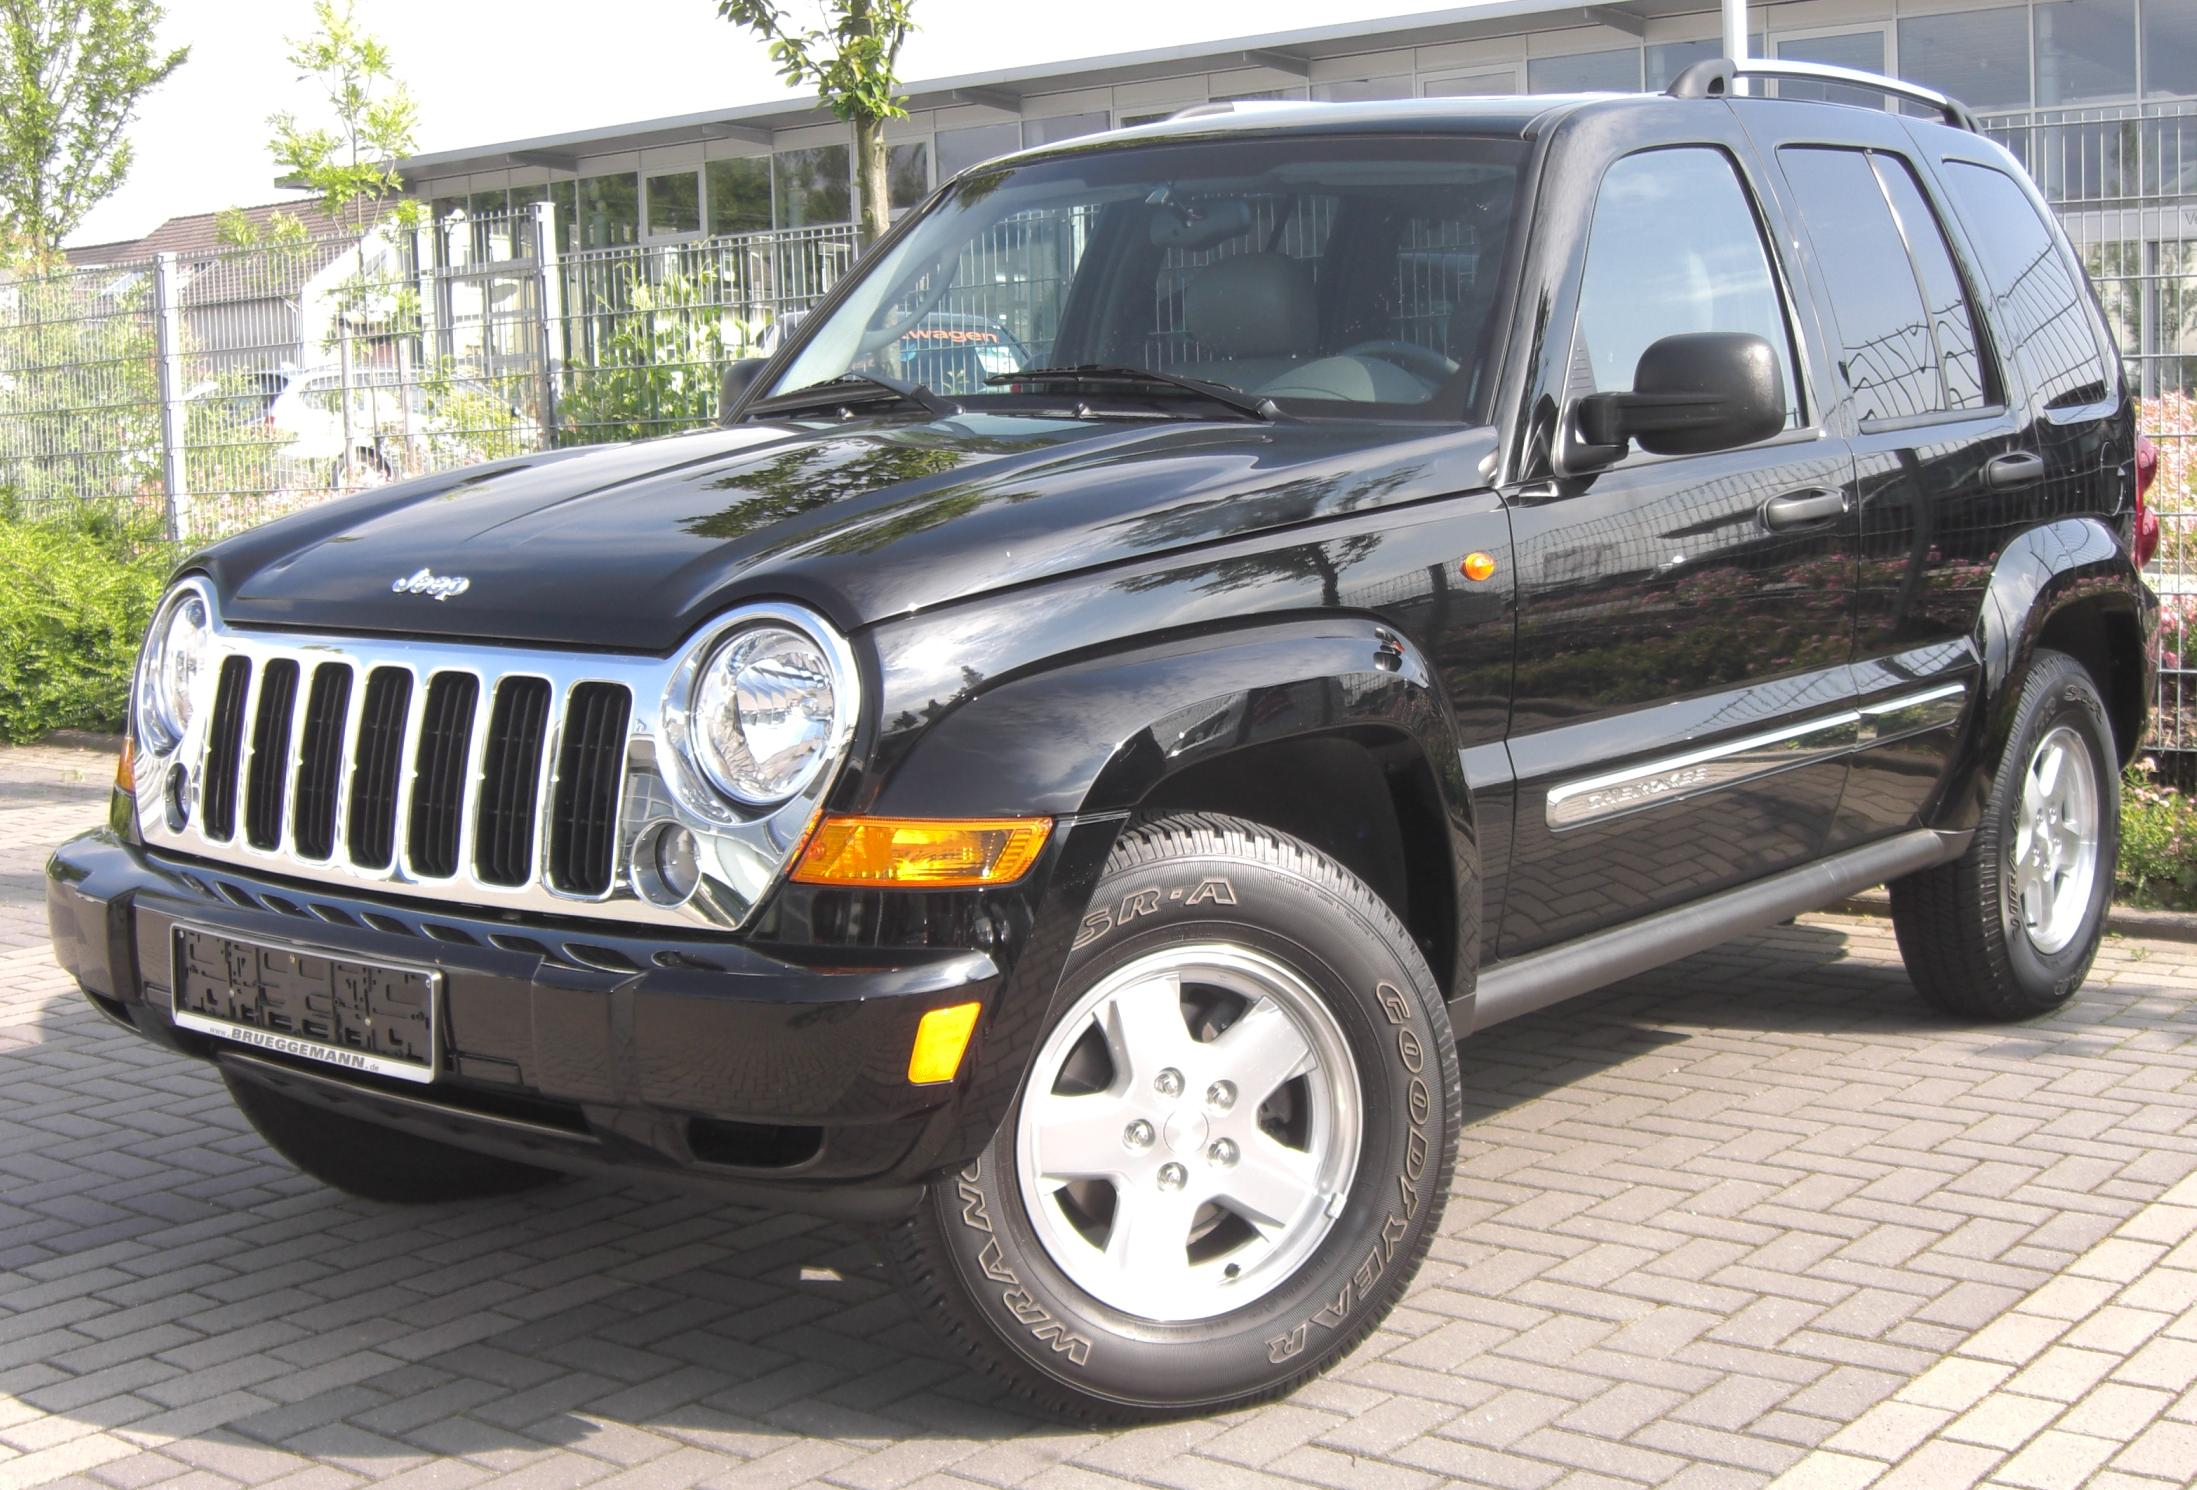 Jeep Liberty Lifted >> File:Jeep Cherokee front (2008).jpg - Wikimedia Commons